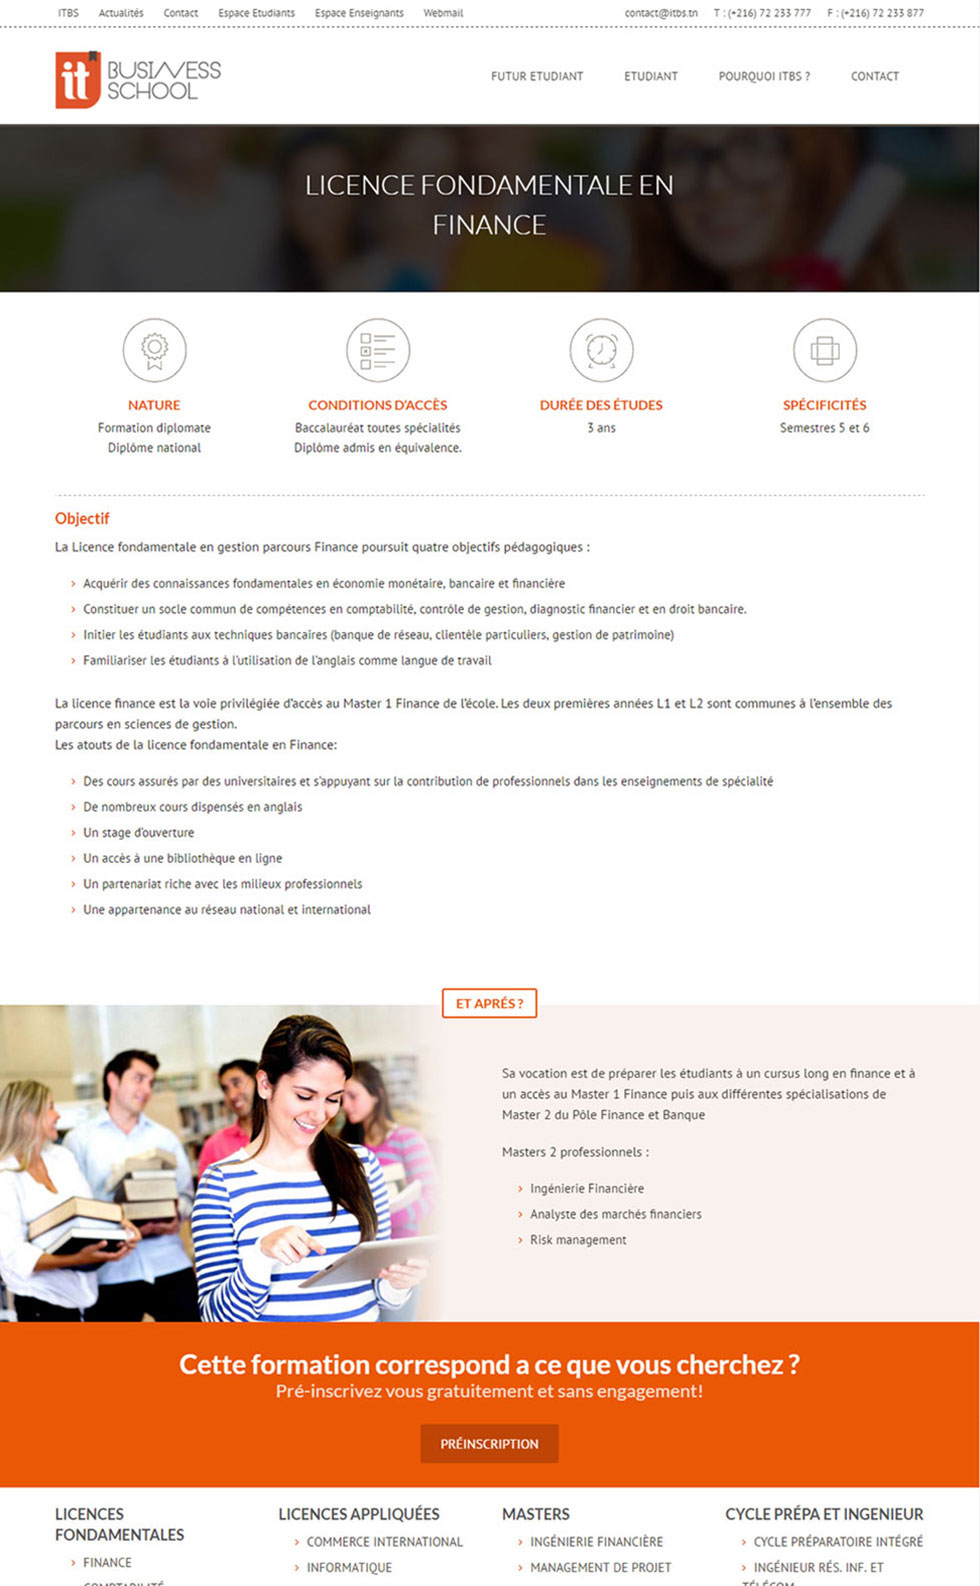 Webdesign Corporate, Itbs, Business School